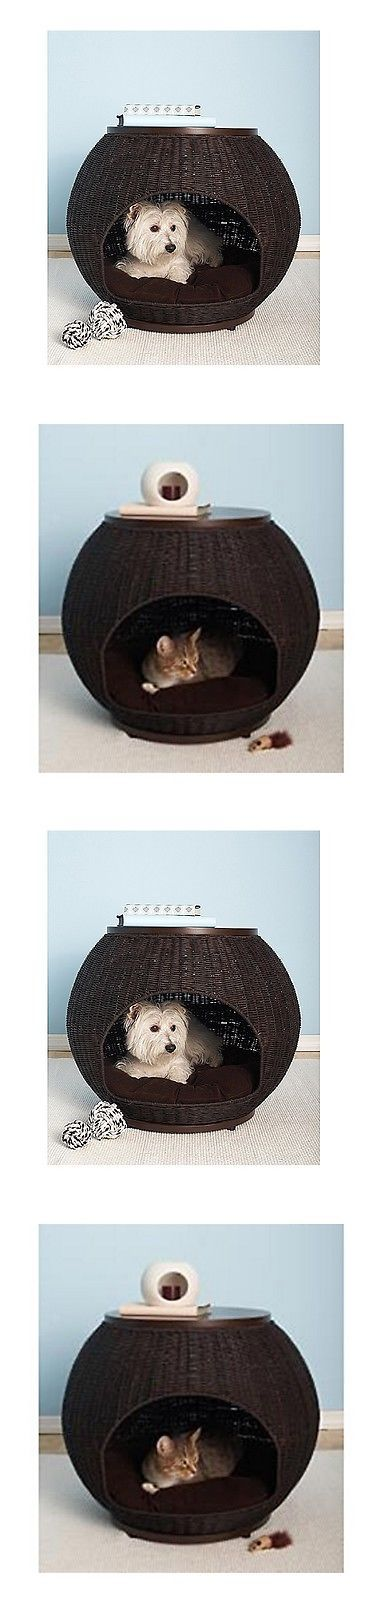 Animals Dog: Cat Furniture Modern Small Dog House Indoor Bed End Table Pet Supplies Kennel BUY IT NOW ONLY: $211.99